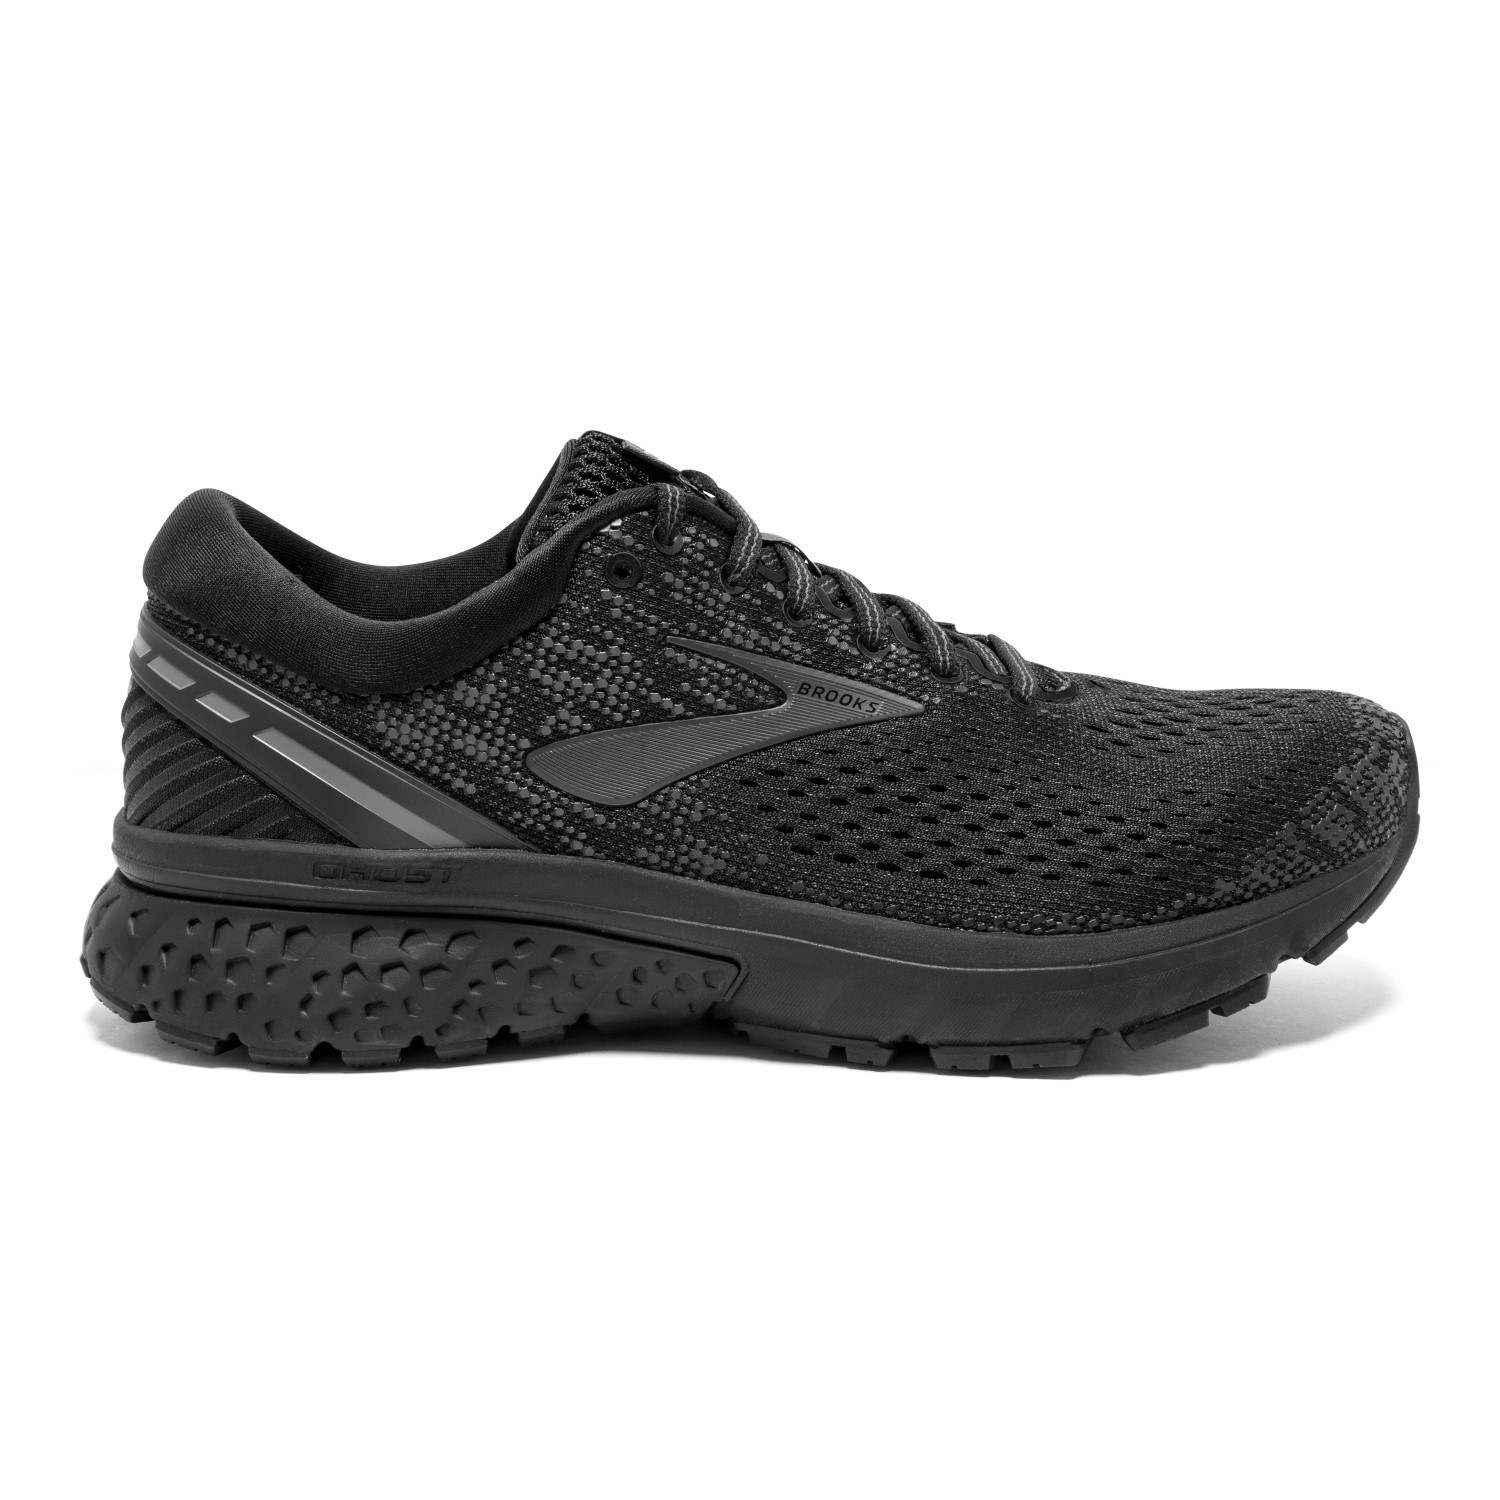 88501f5636f Brooks Ghost 11 - Womens Running Shoes - Black Ebony